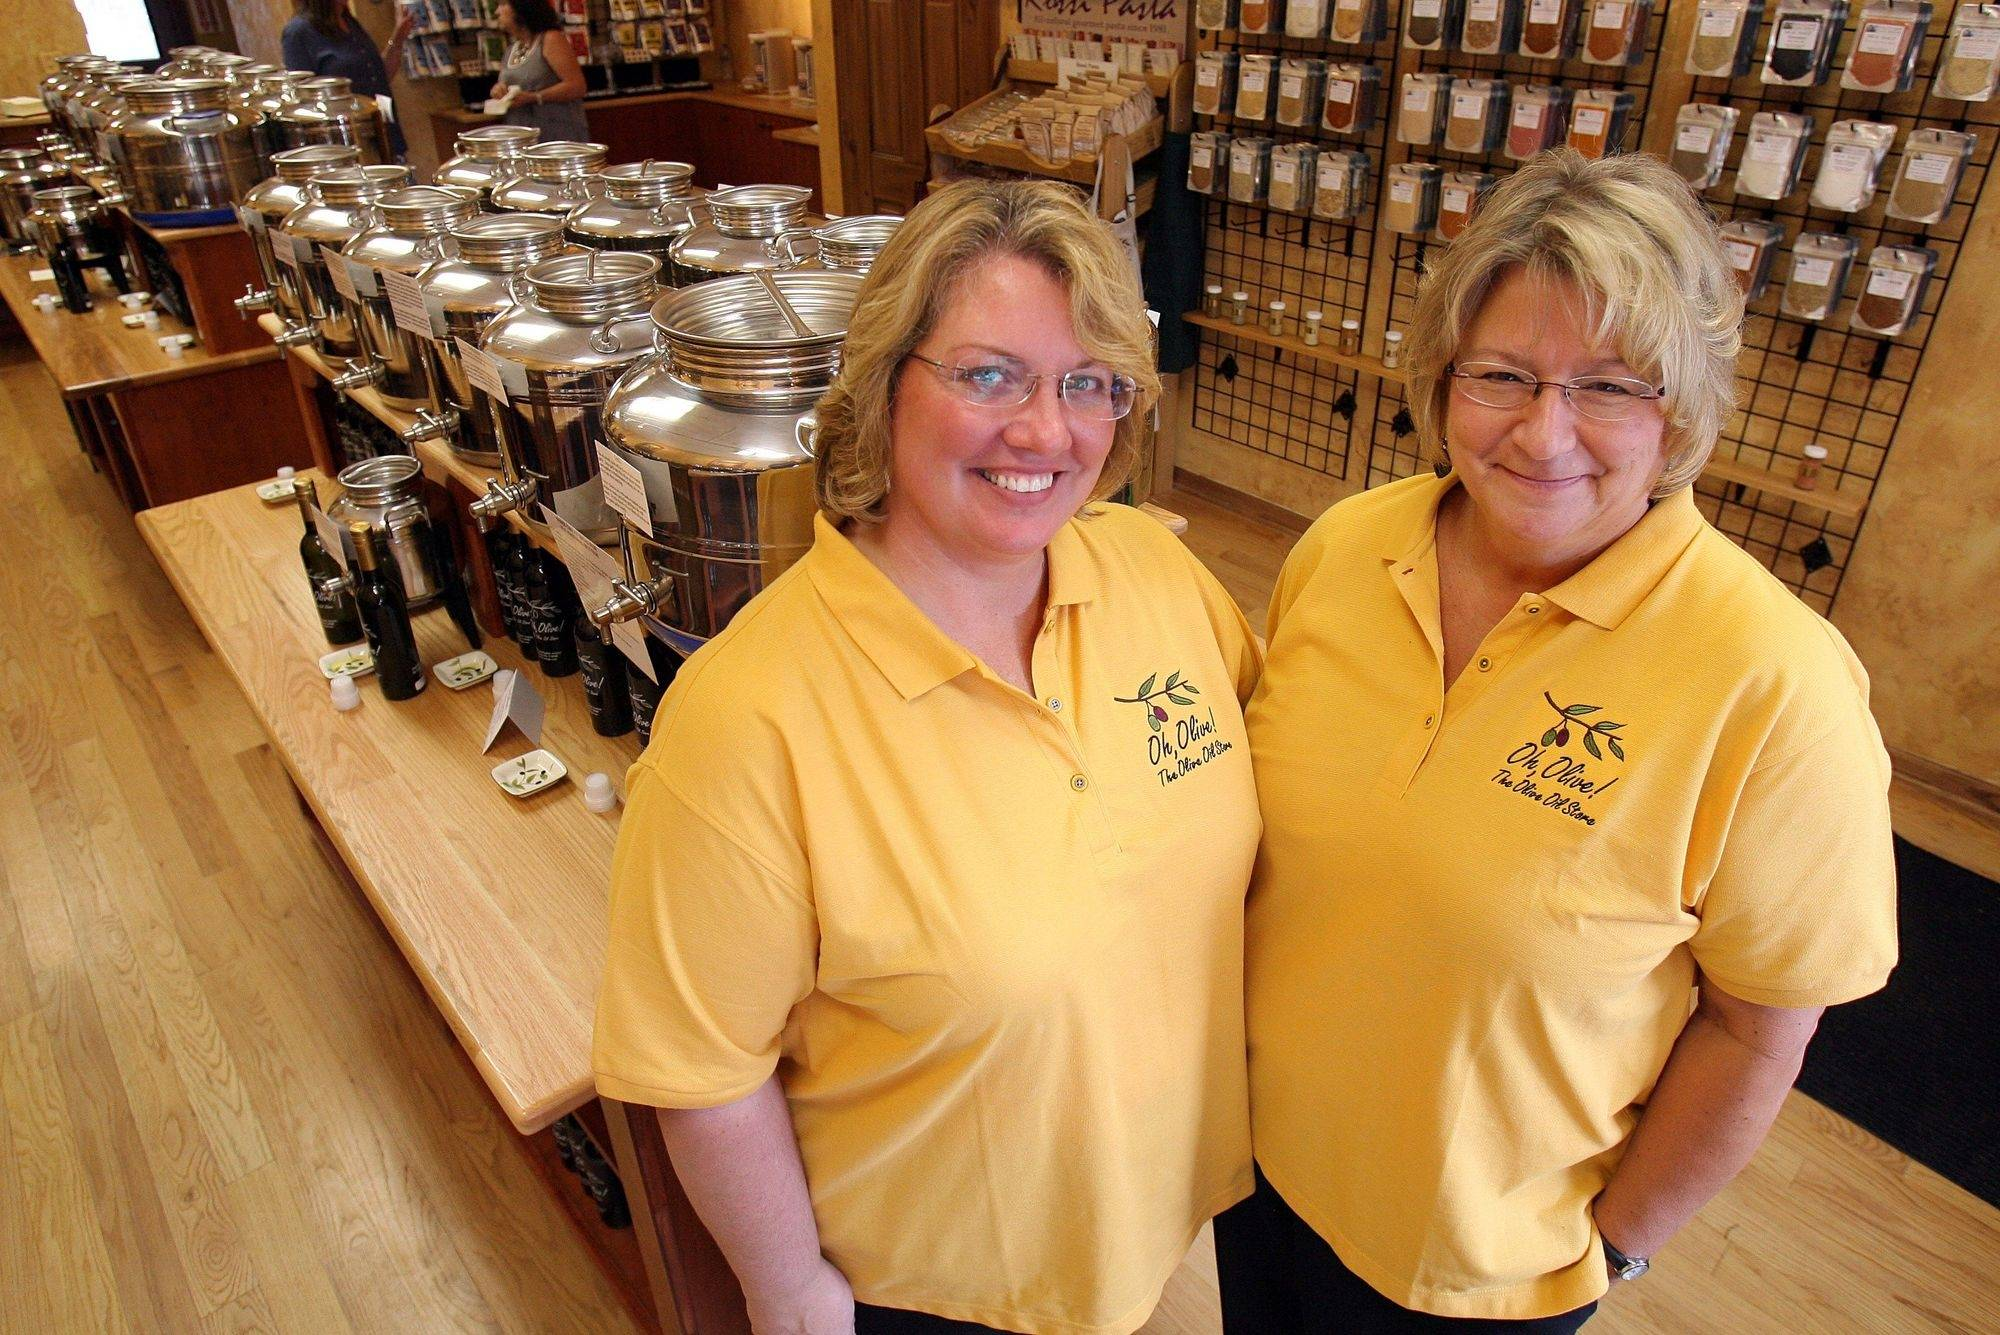 Mary Koval and Sandy Schuenemann are the co-owners of a new olive oil store called Oh Olive in downtown Libertyville. The store features seasoned olive oil and other gourmet foods.